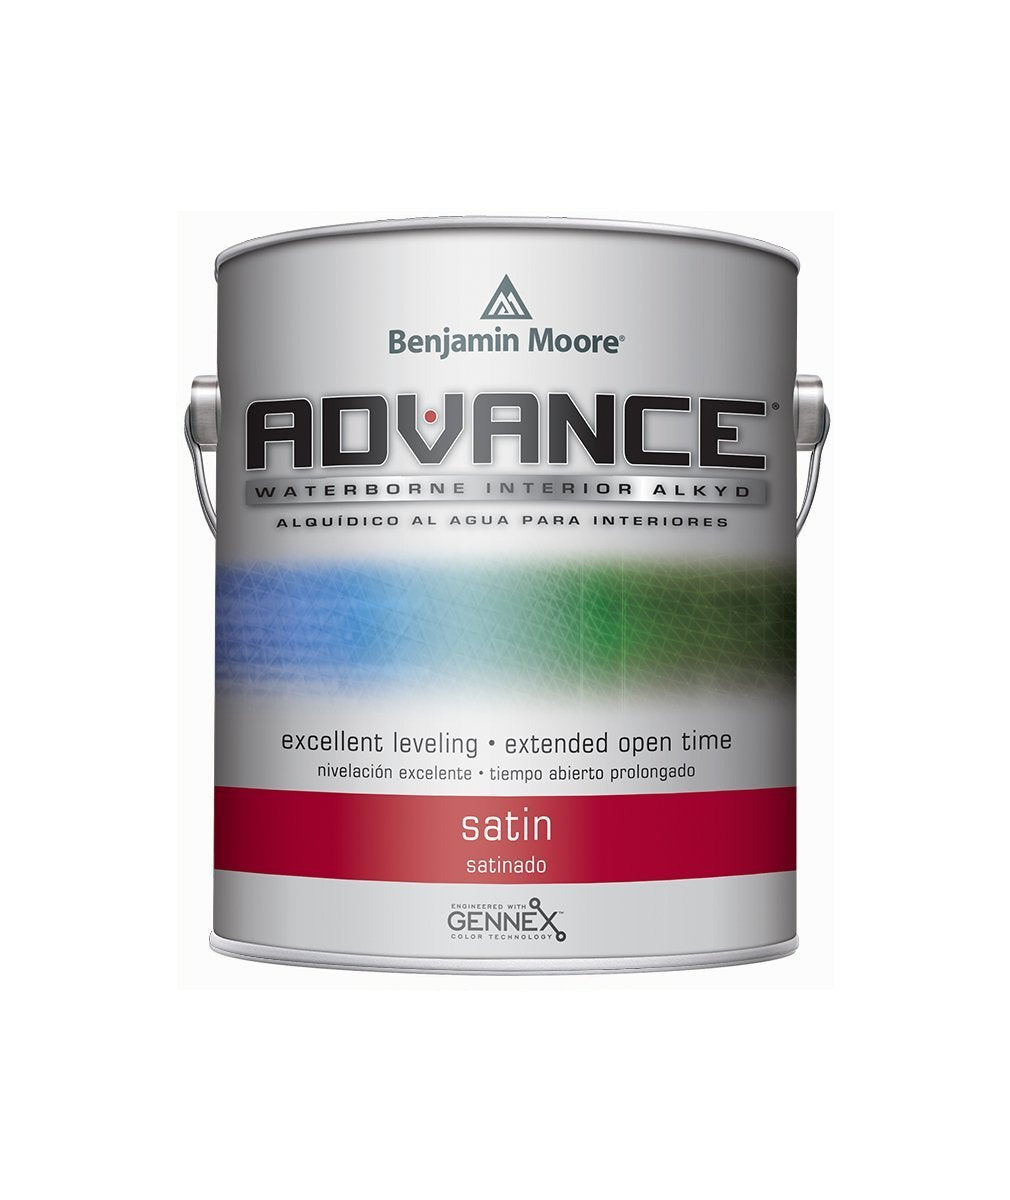 Benjamin Moore Advance Satin Paint available at Mallory Paint Stores.